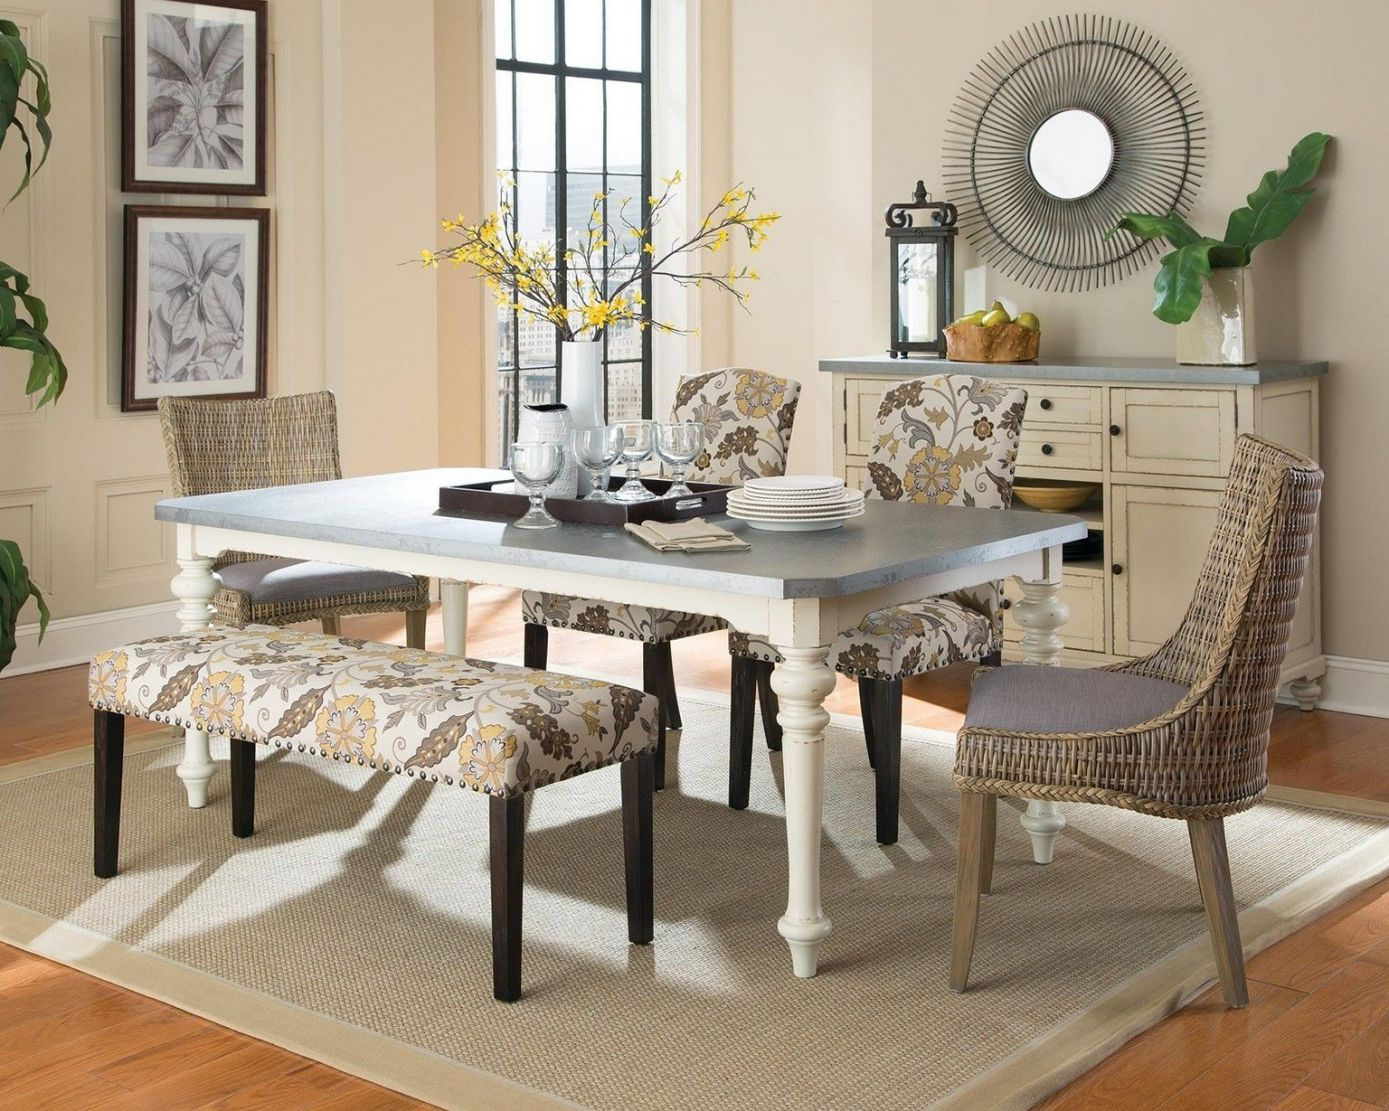 Captivating 70+ Small Dining Room Decorating Ideas   Interior Paint Colors For 2017  Check More At